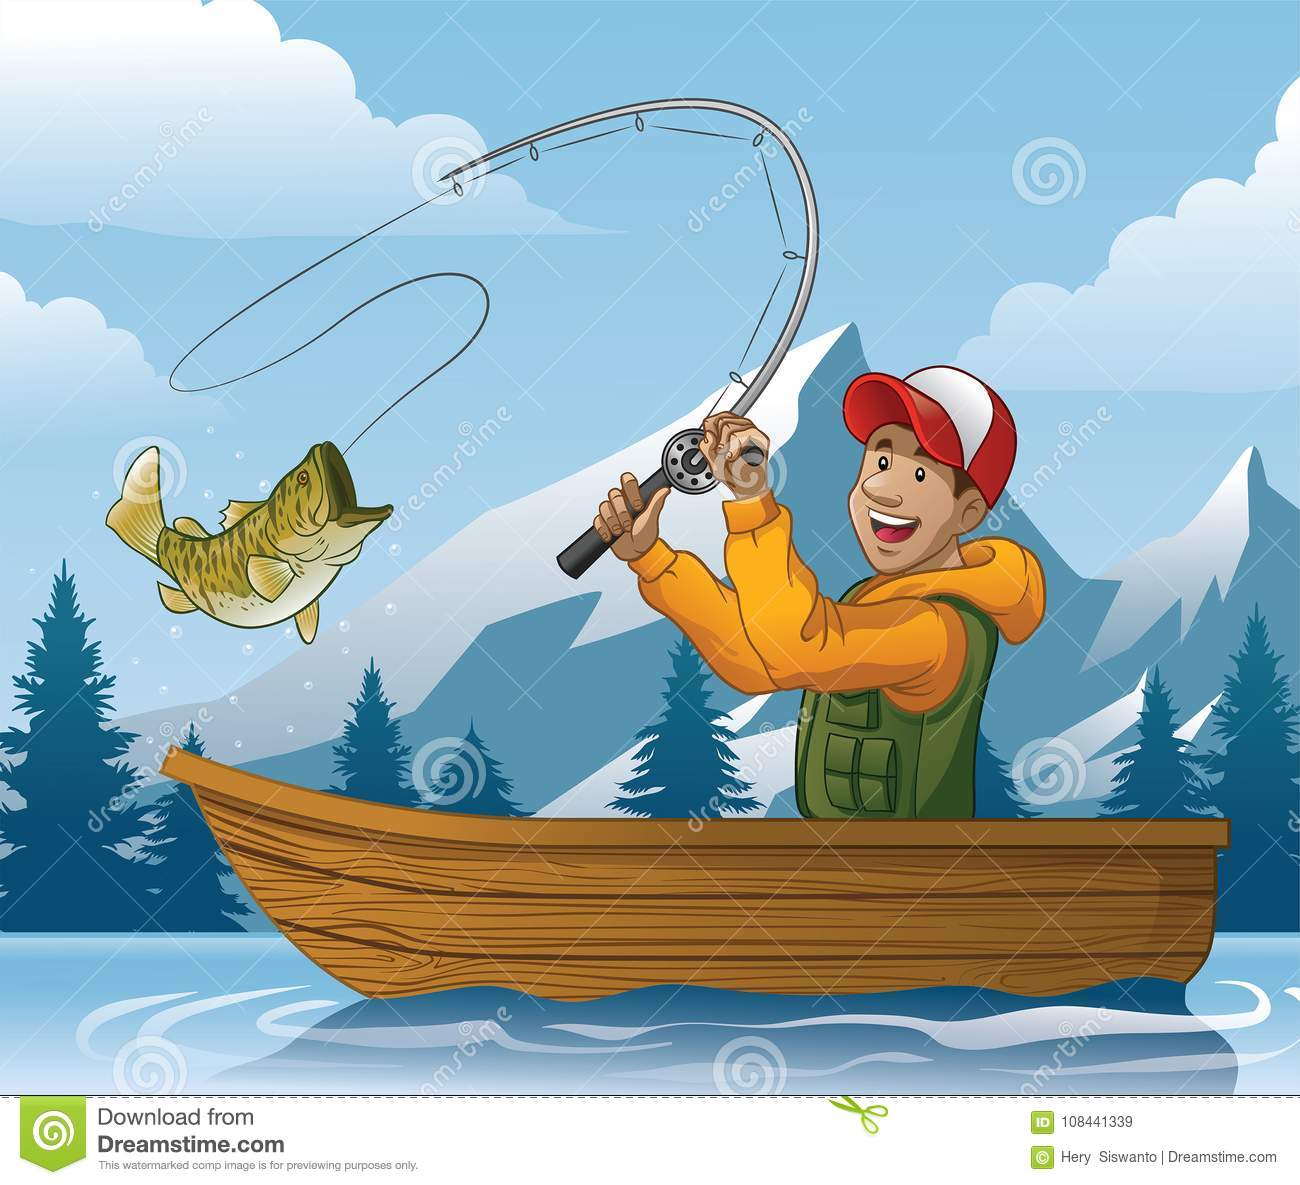 Cartoon Fishing Boat Stock Illustrations 3 991 Cartoon Fishing Boat Stock Illustrations Vectors Clipart Dreamstime